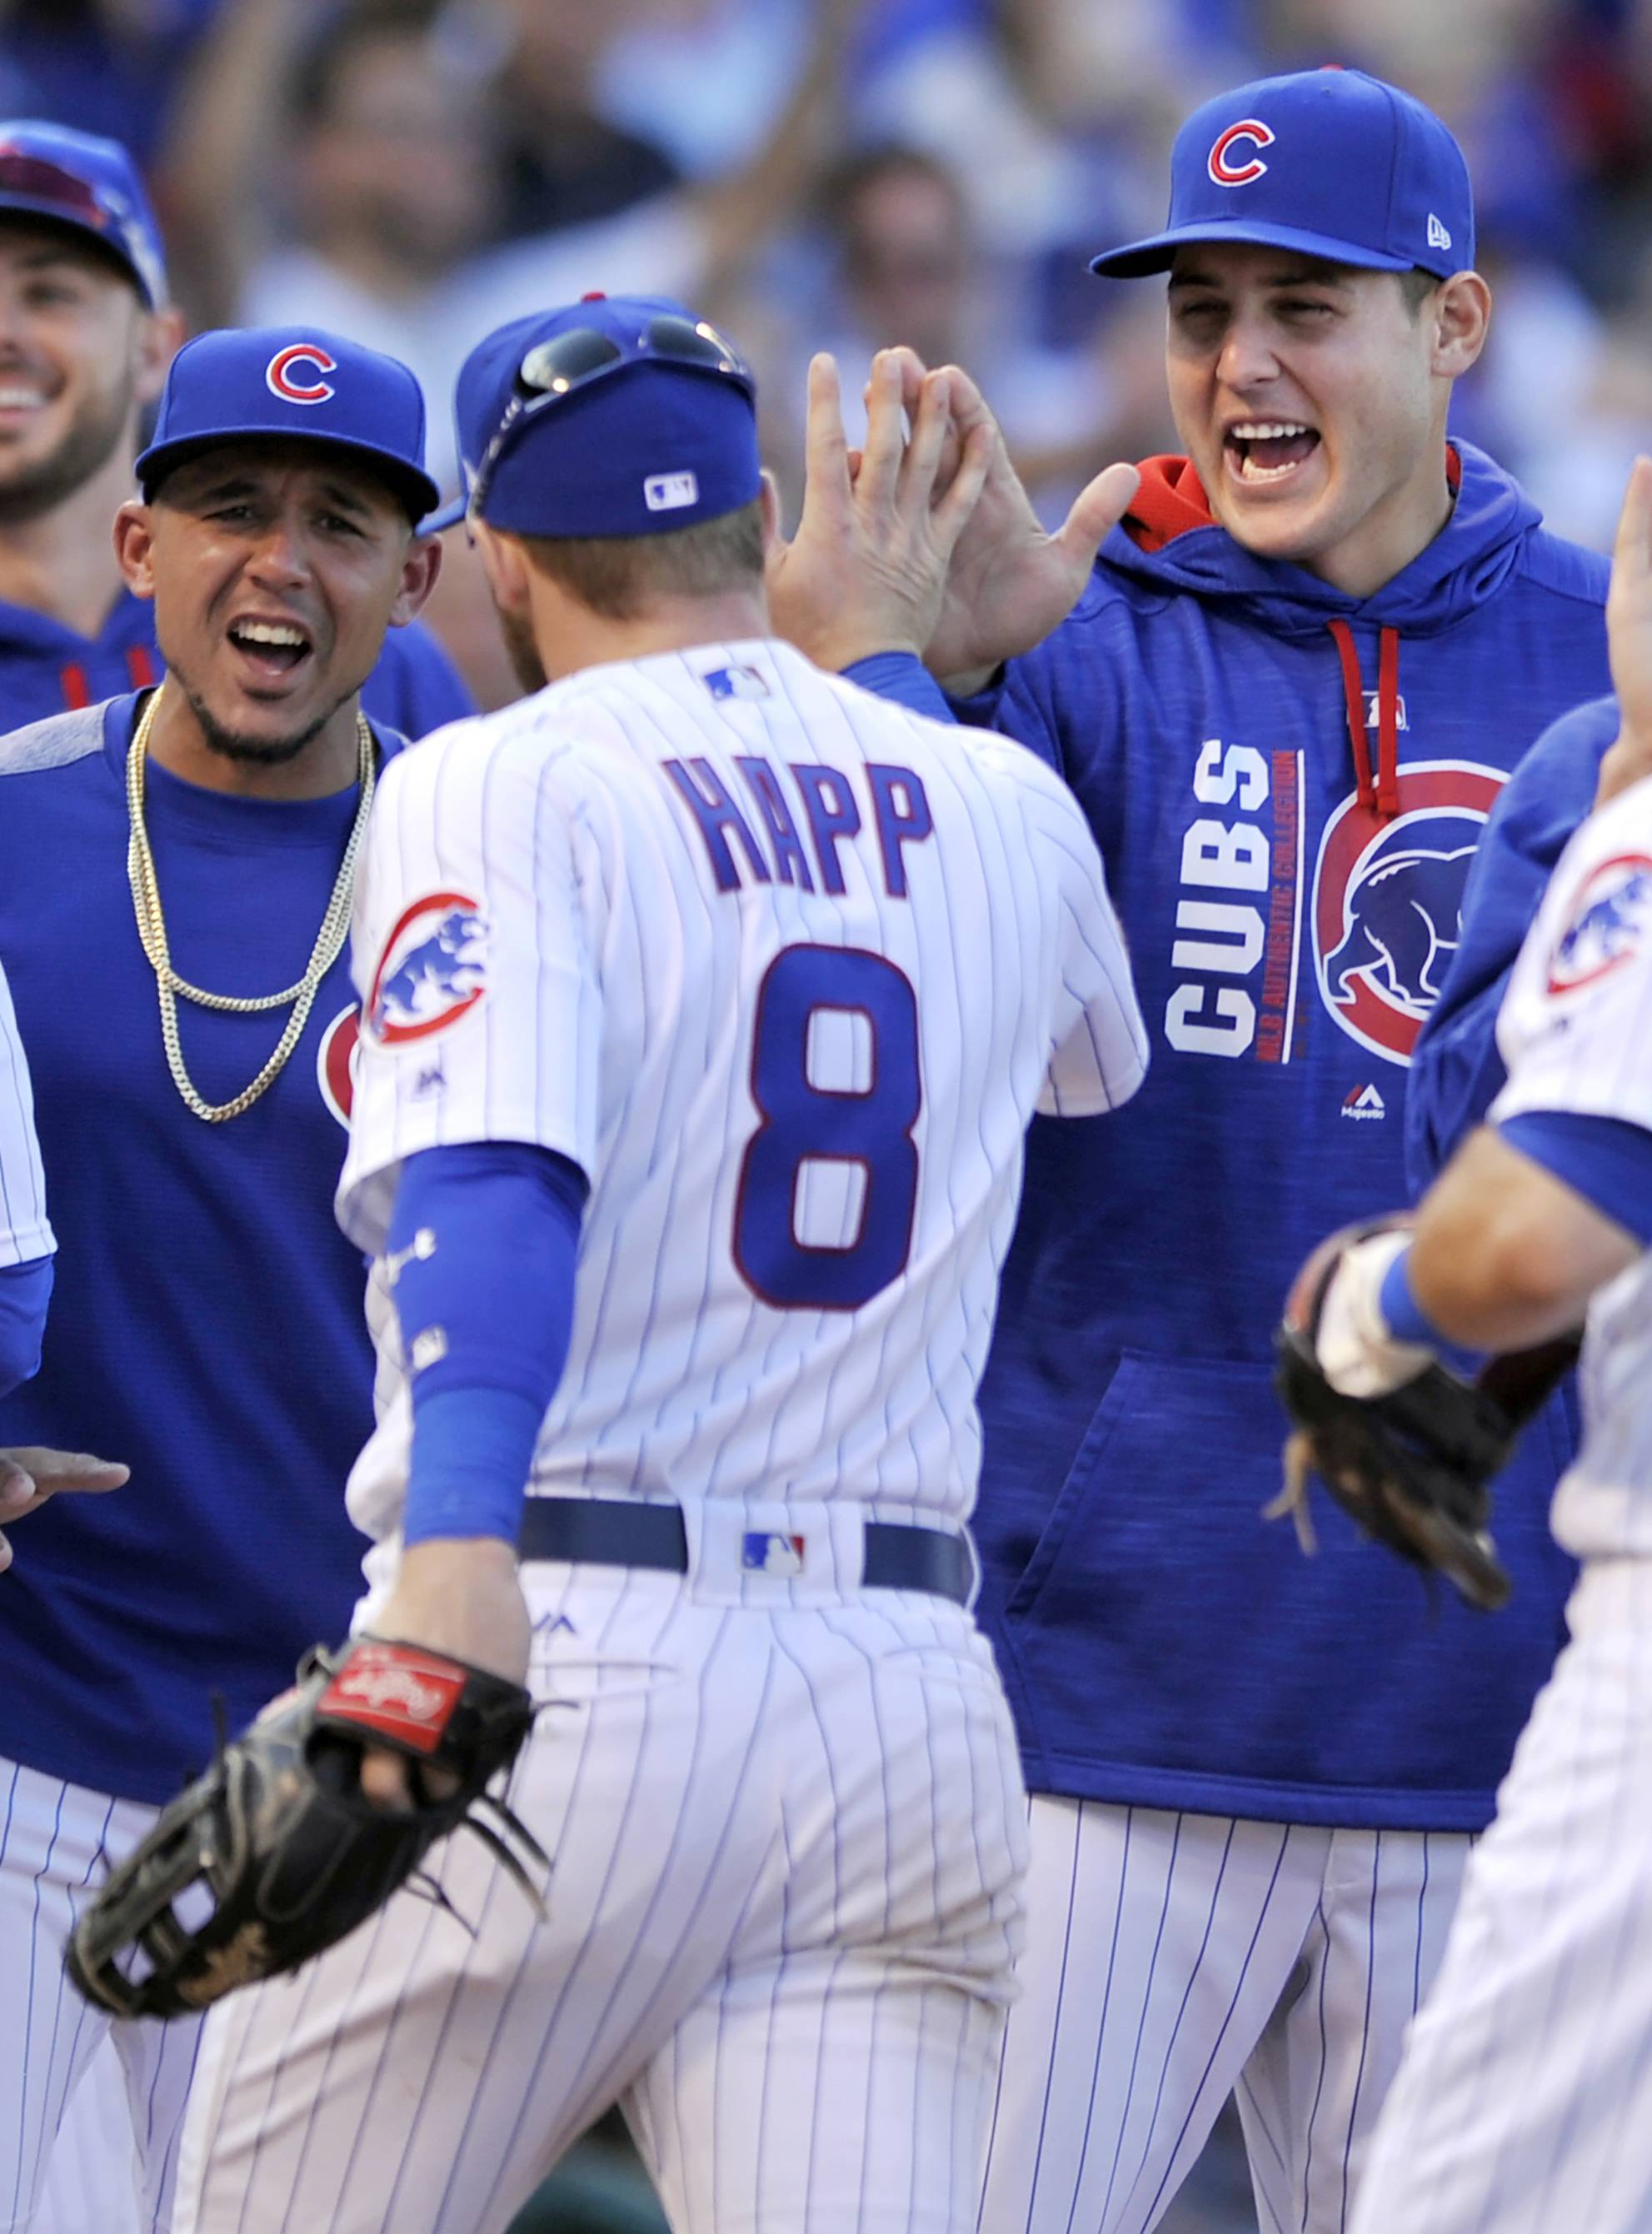 Cubs' first baseman Anthony Rizzo, right, celebrates with teammate Ian Happ after defeating the Cincinnati Reds 5-4 on Friday at Wrigley Field. With many of the regular resting, Happ's 3-run homer in the bottom of the eighth proved the difference maker.